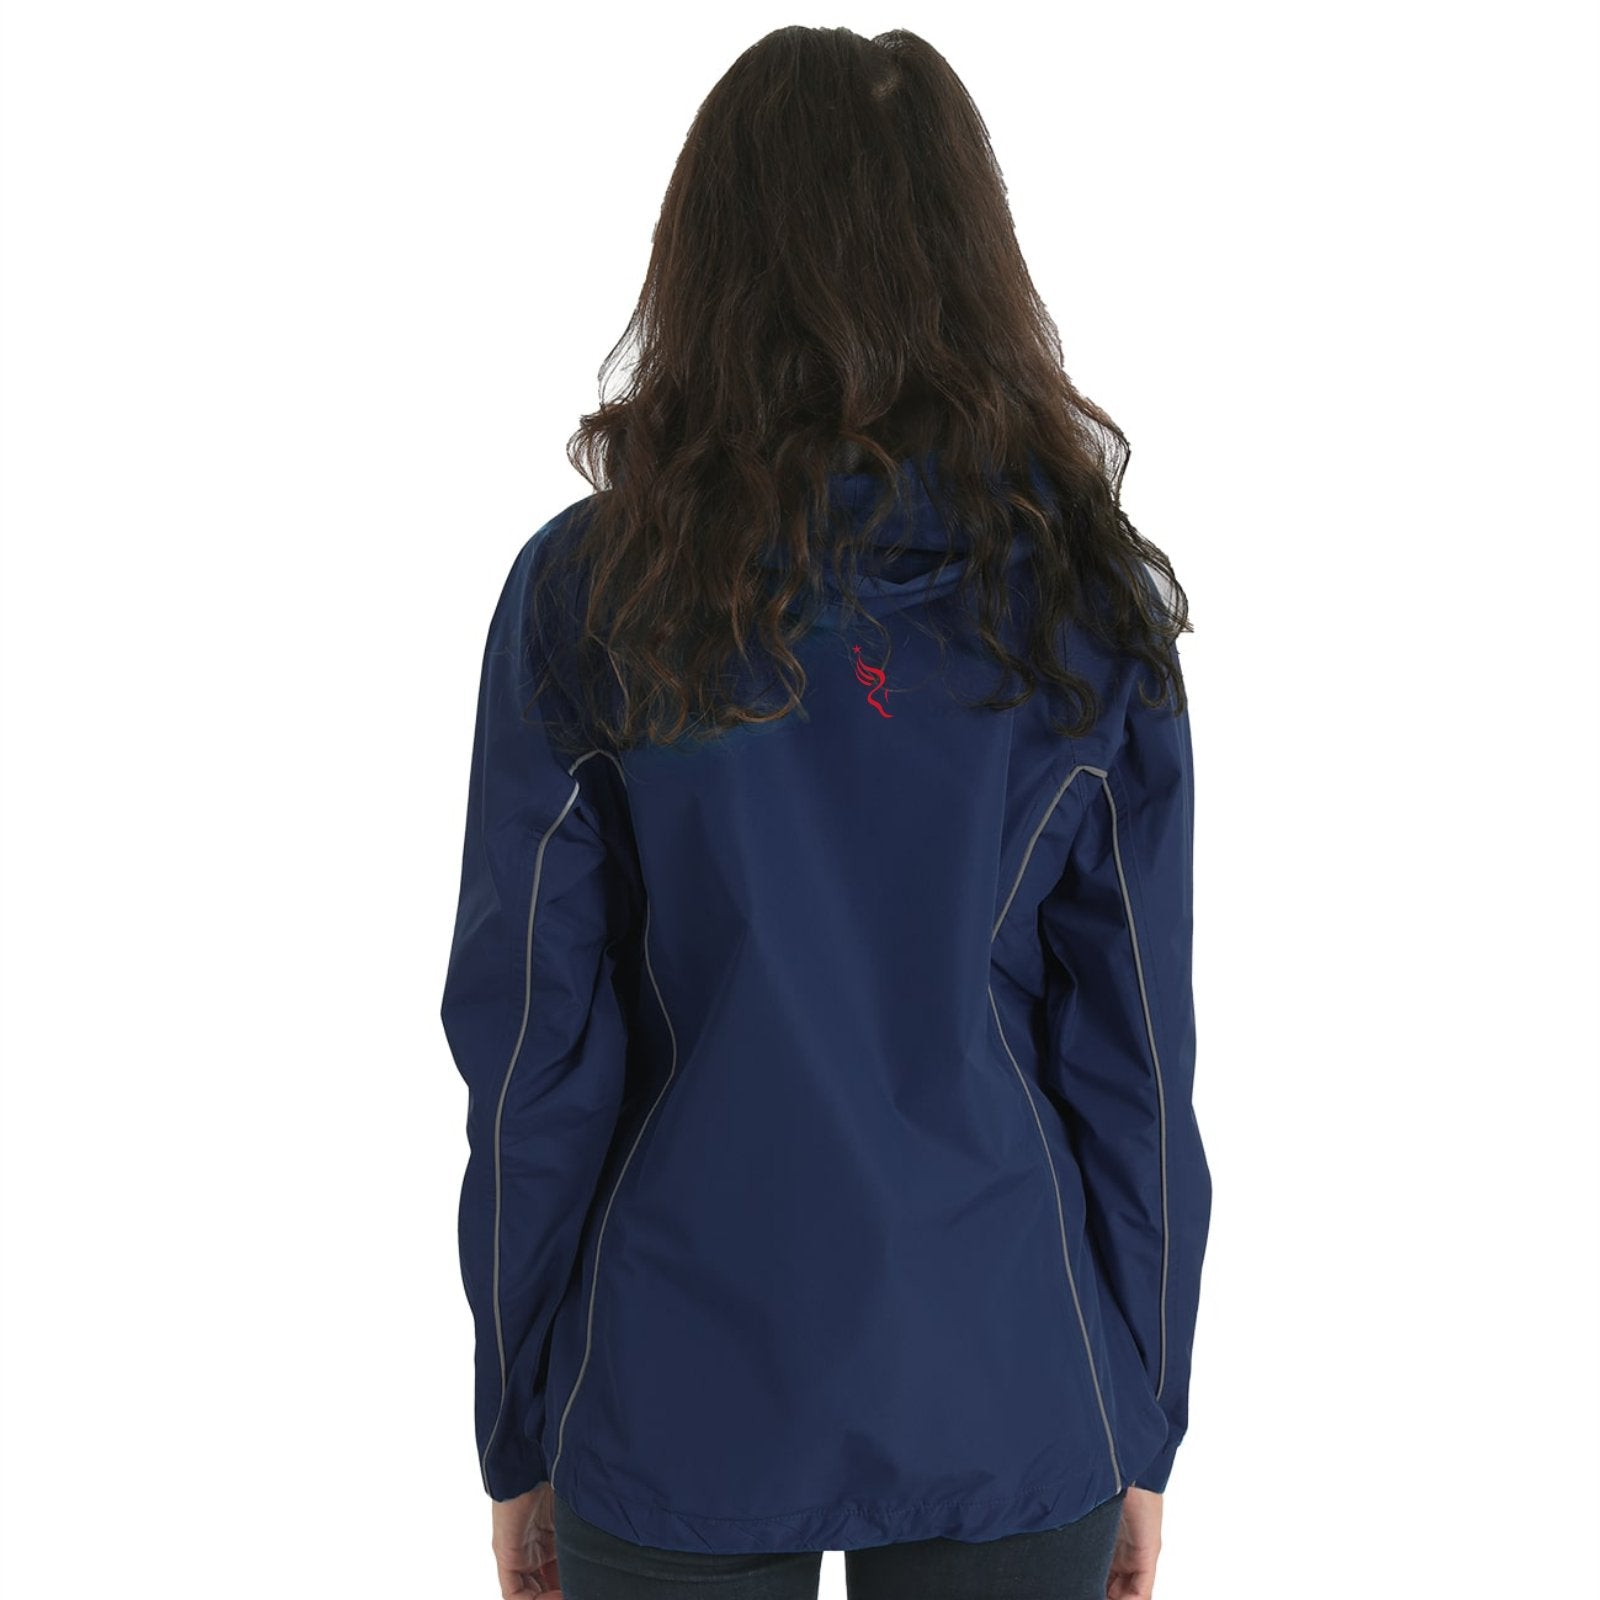 Women's Hooded Breathable Waterproof Full Zip Jacket -Navy 'Left Chest Embr. Design' - AACR Philadelphia Marathon